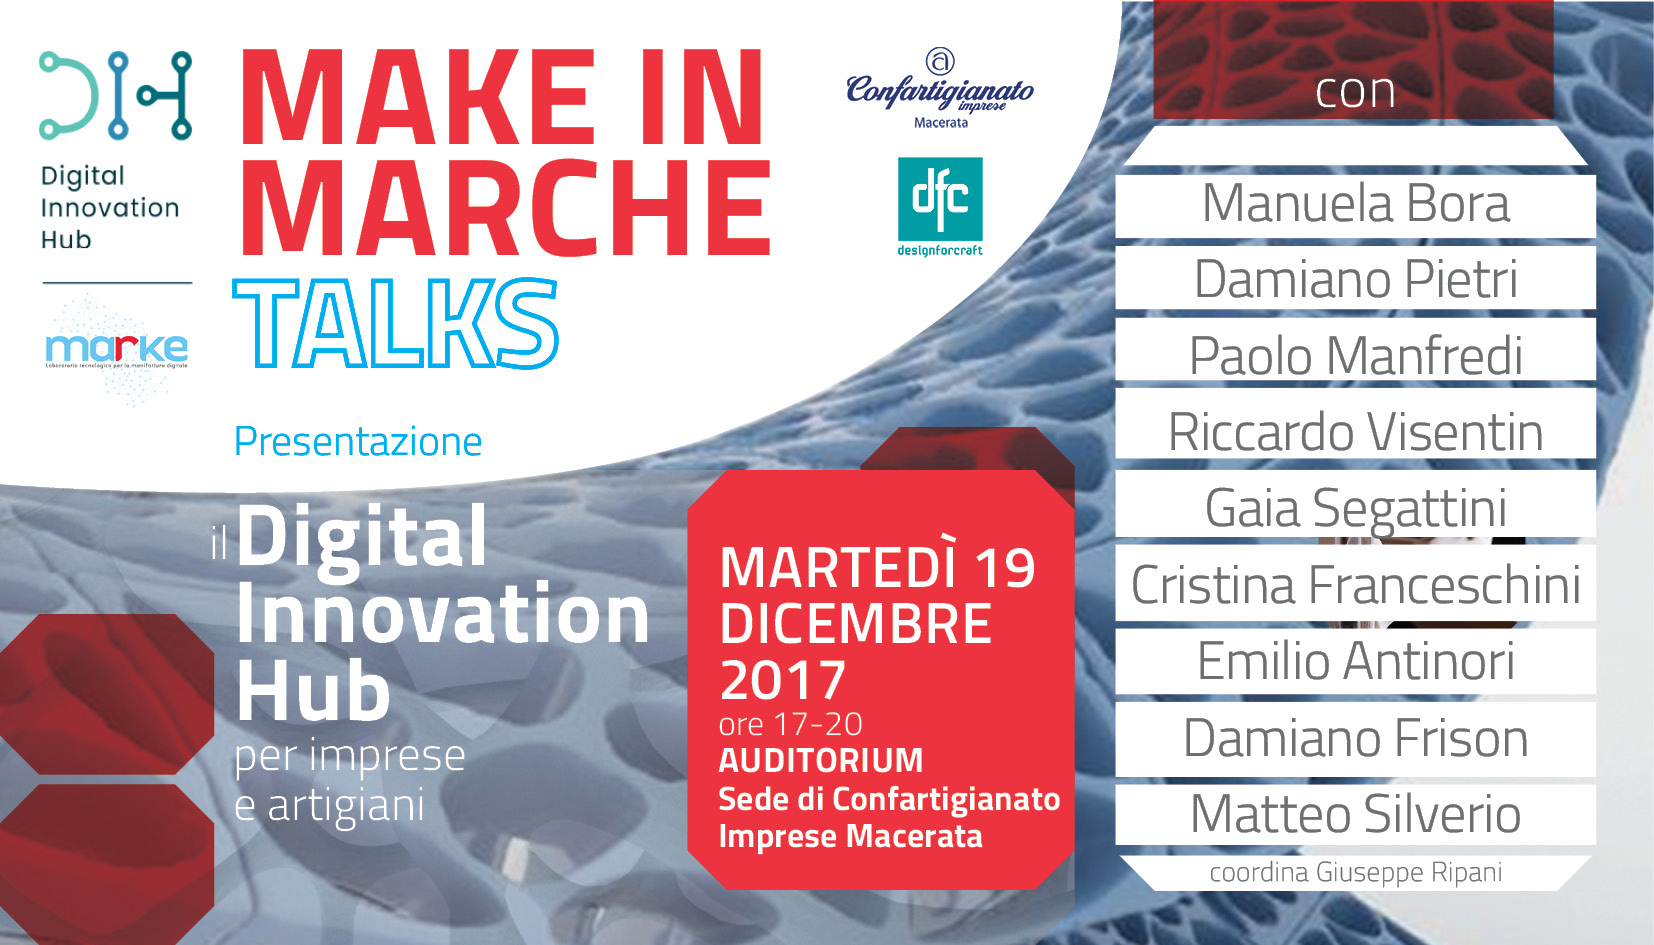 make in marke 2017